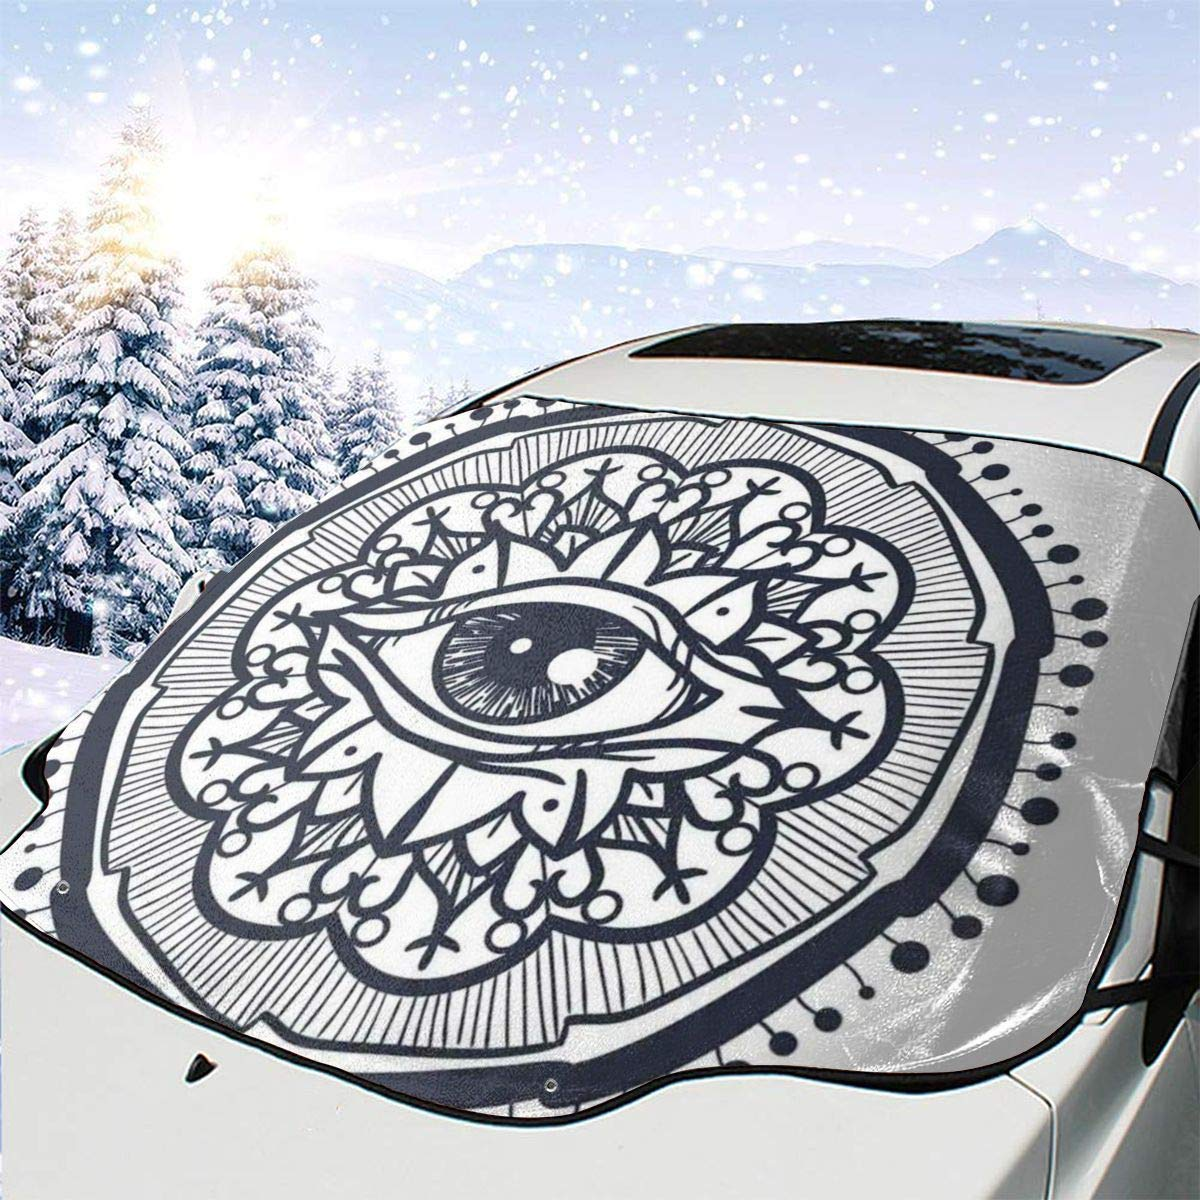 Car Front Window Windshield Snow Realistic famous Retro Cover Low price Patt Eye